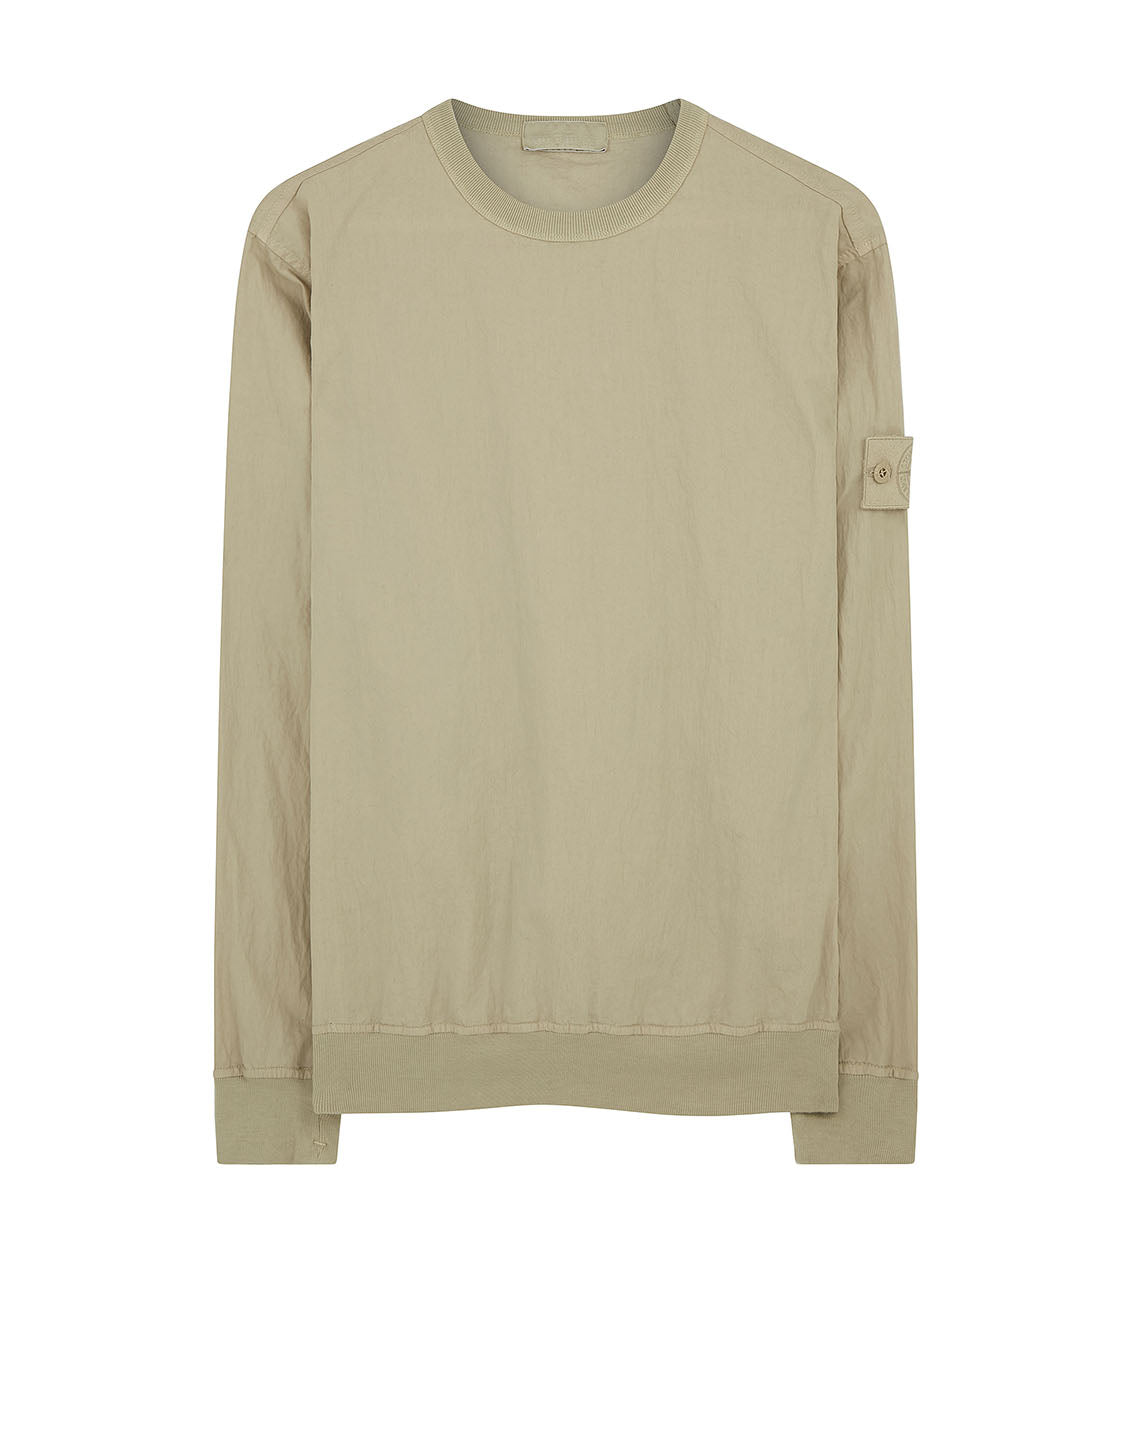 659F2 GHOST PIECE_COTTON NYLON TELA Sweatshirt in Beige